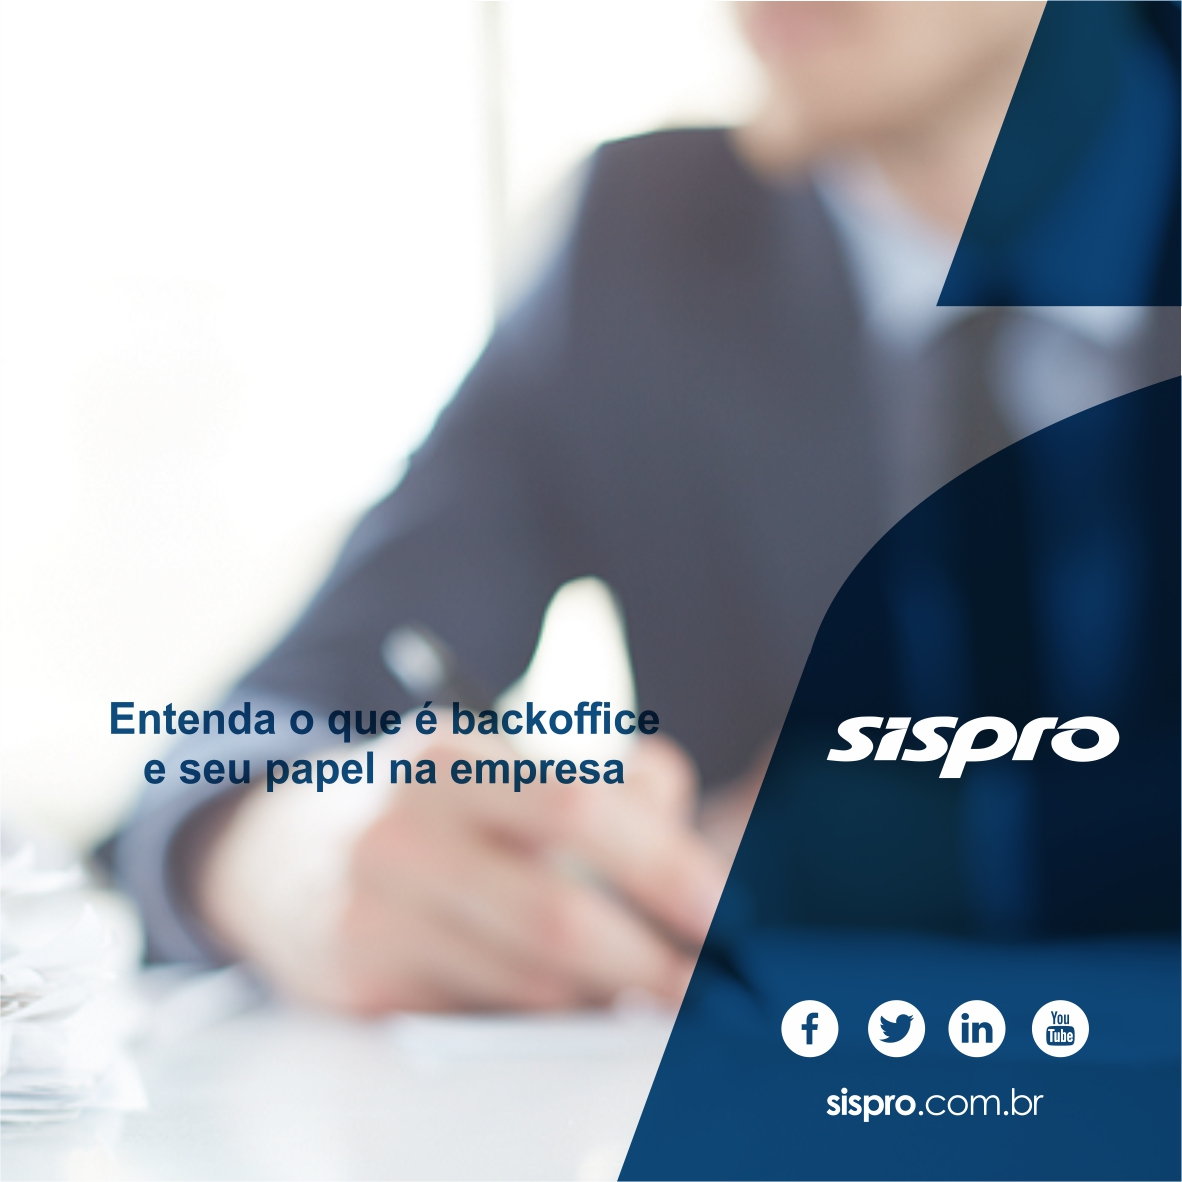 entenda-o-que-e-backoffice-e-seu-papel-na-empresa